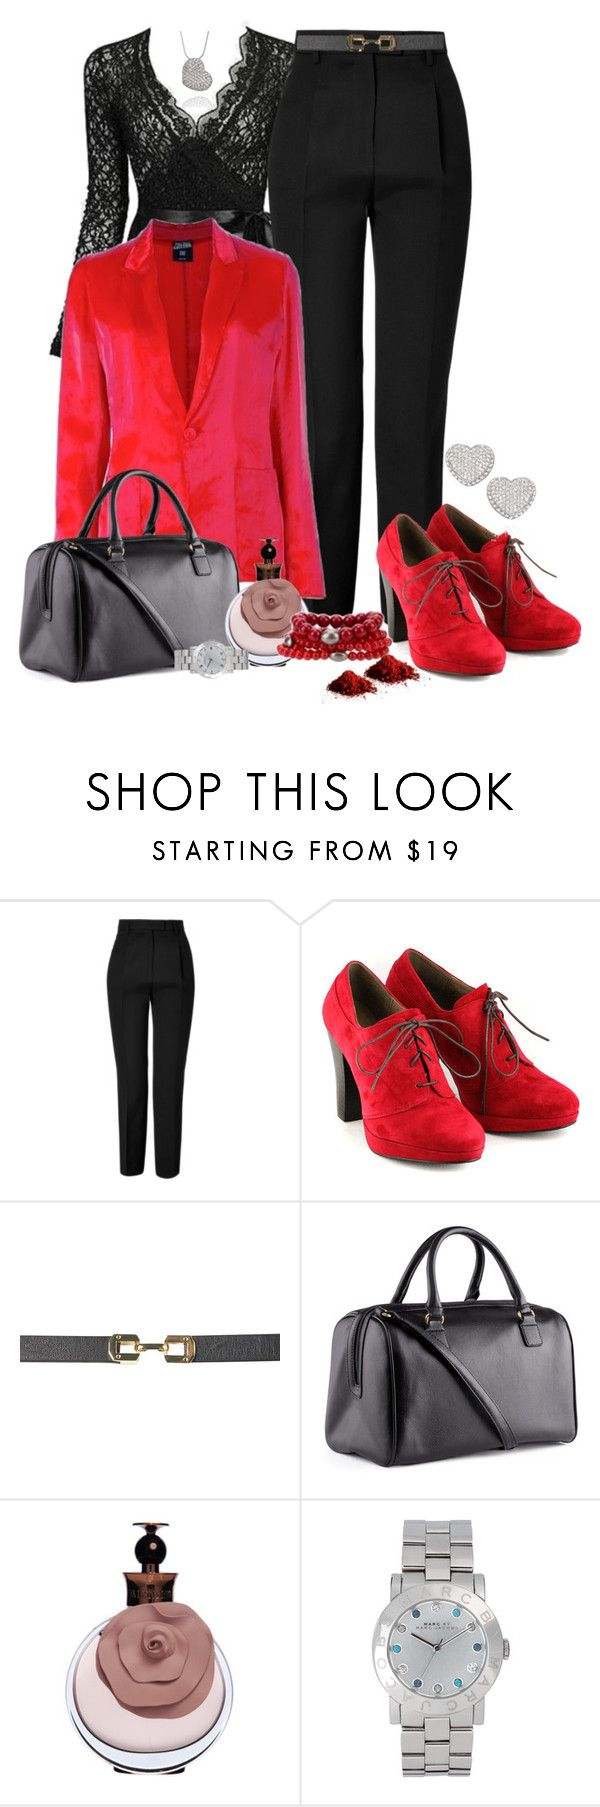 """""""Elegante....."""" by sil-engler ❤ liked on Polyvore featuring Emilio Pucci, Esska, Jean-Paul Gaultier, Topshop, H&M and Marc by Marc Jacobs"""